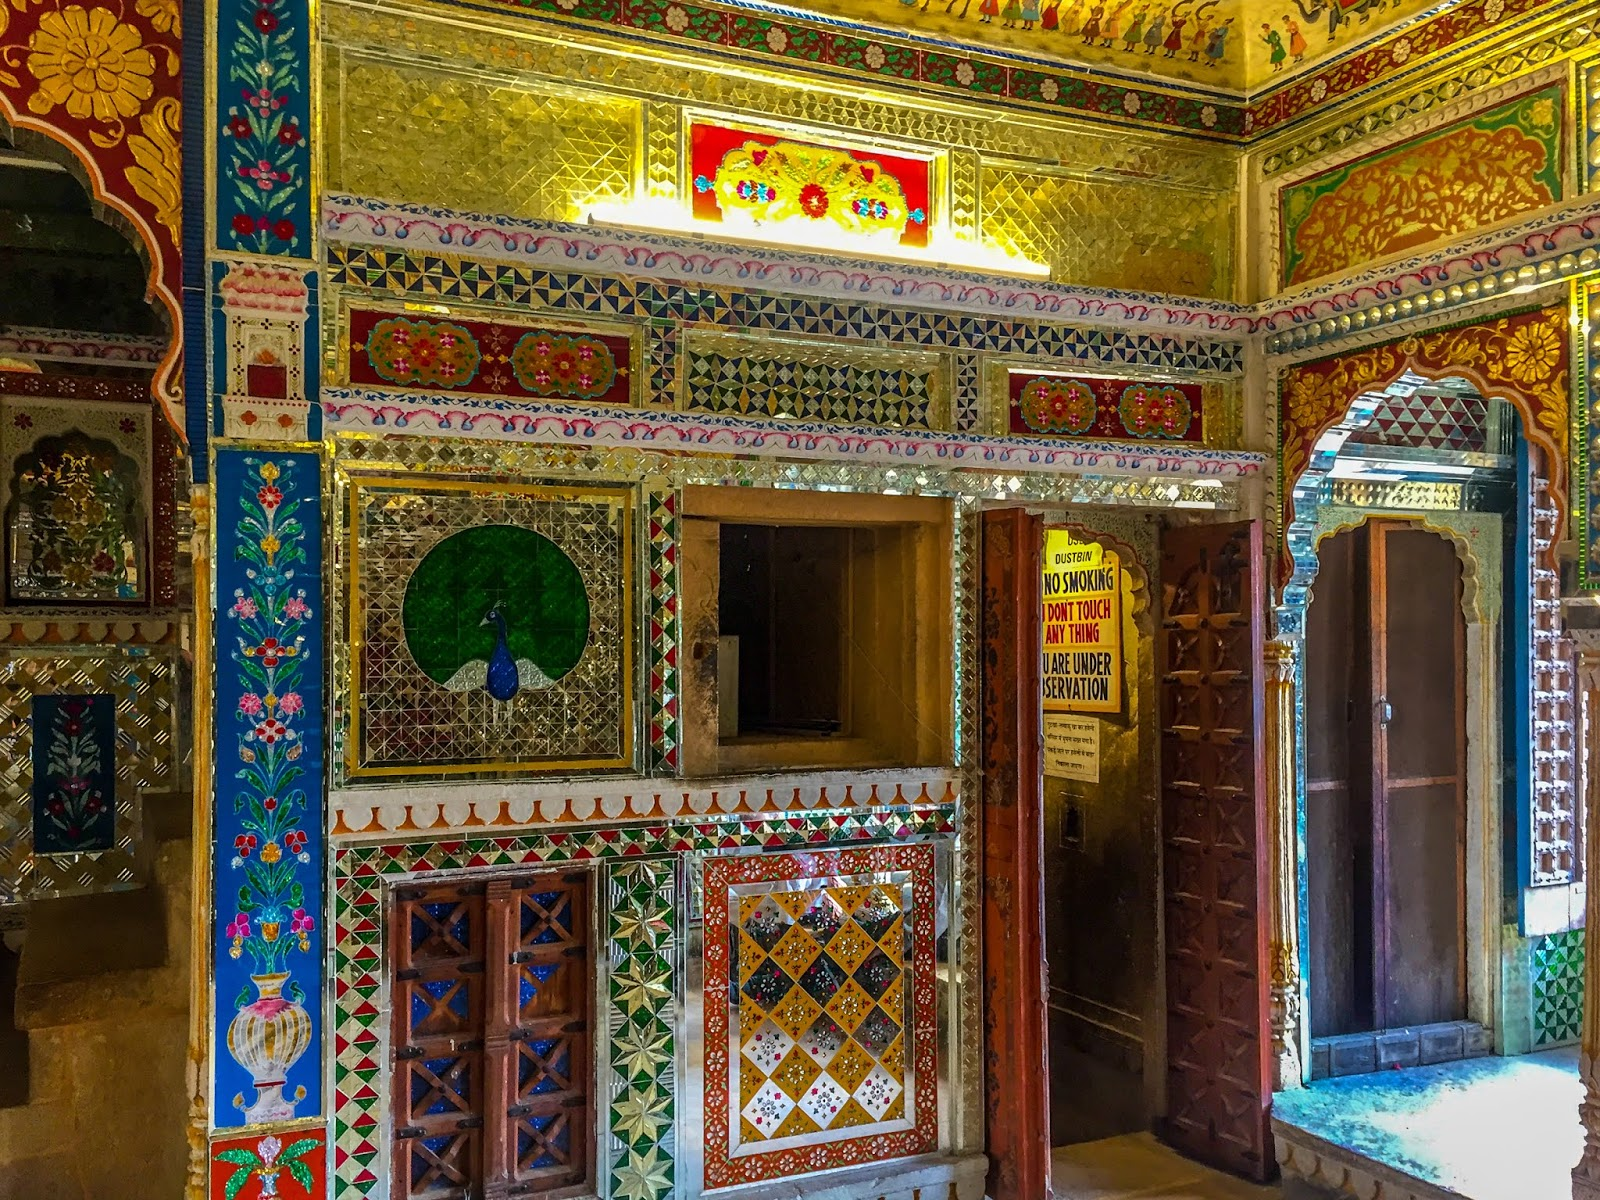 Beautiful mirror work welcomes you, when you enter the Haveli